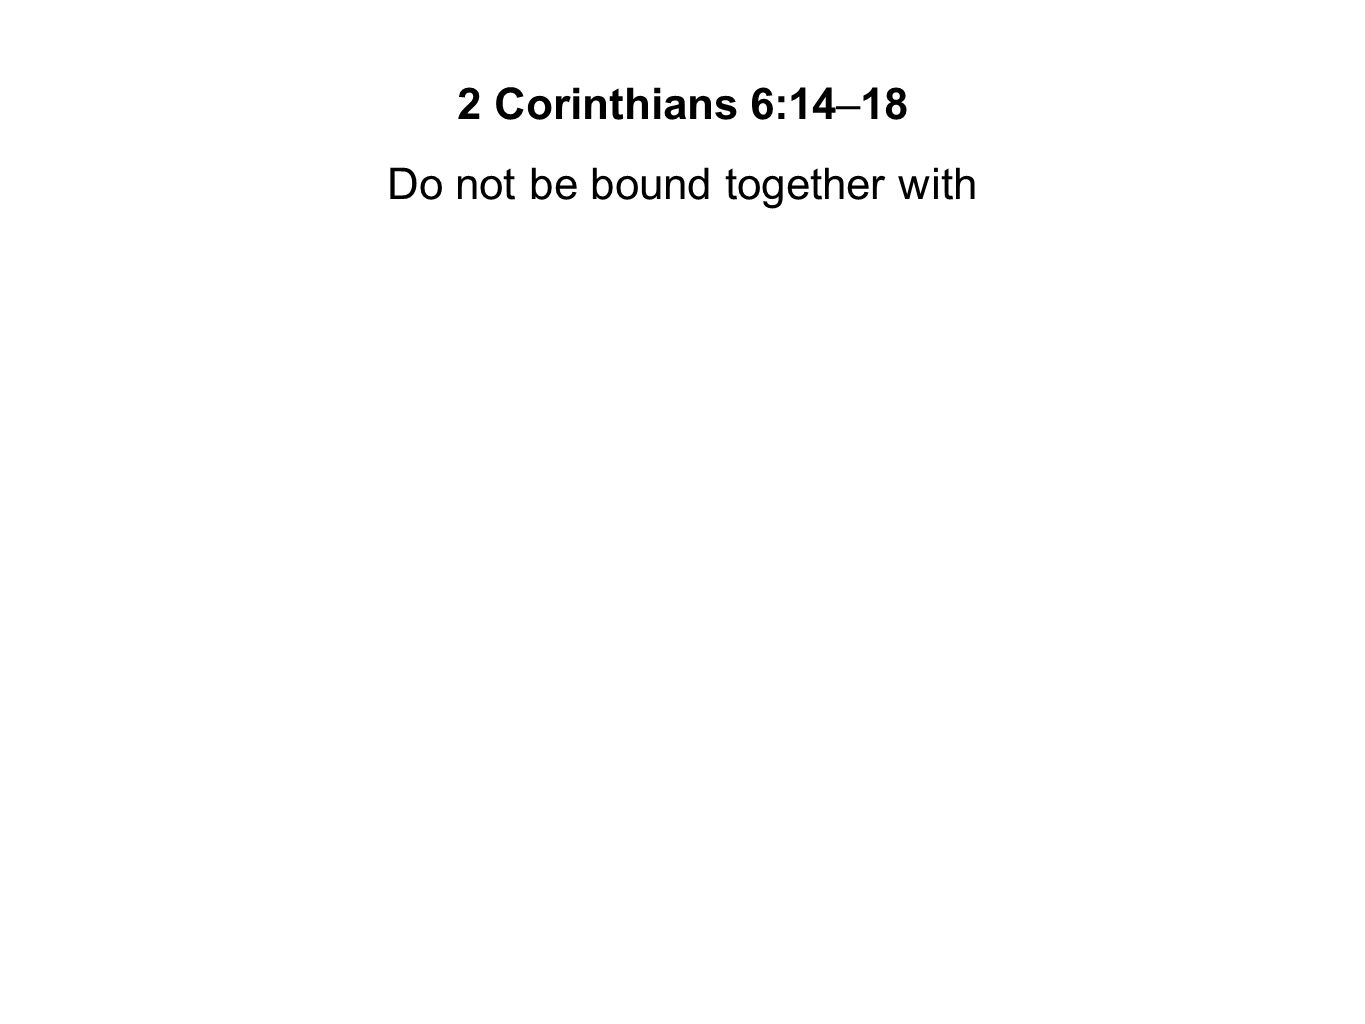 Do not be bound together with